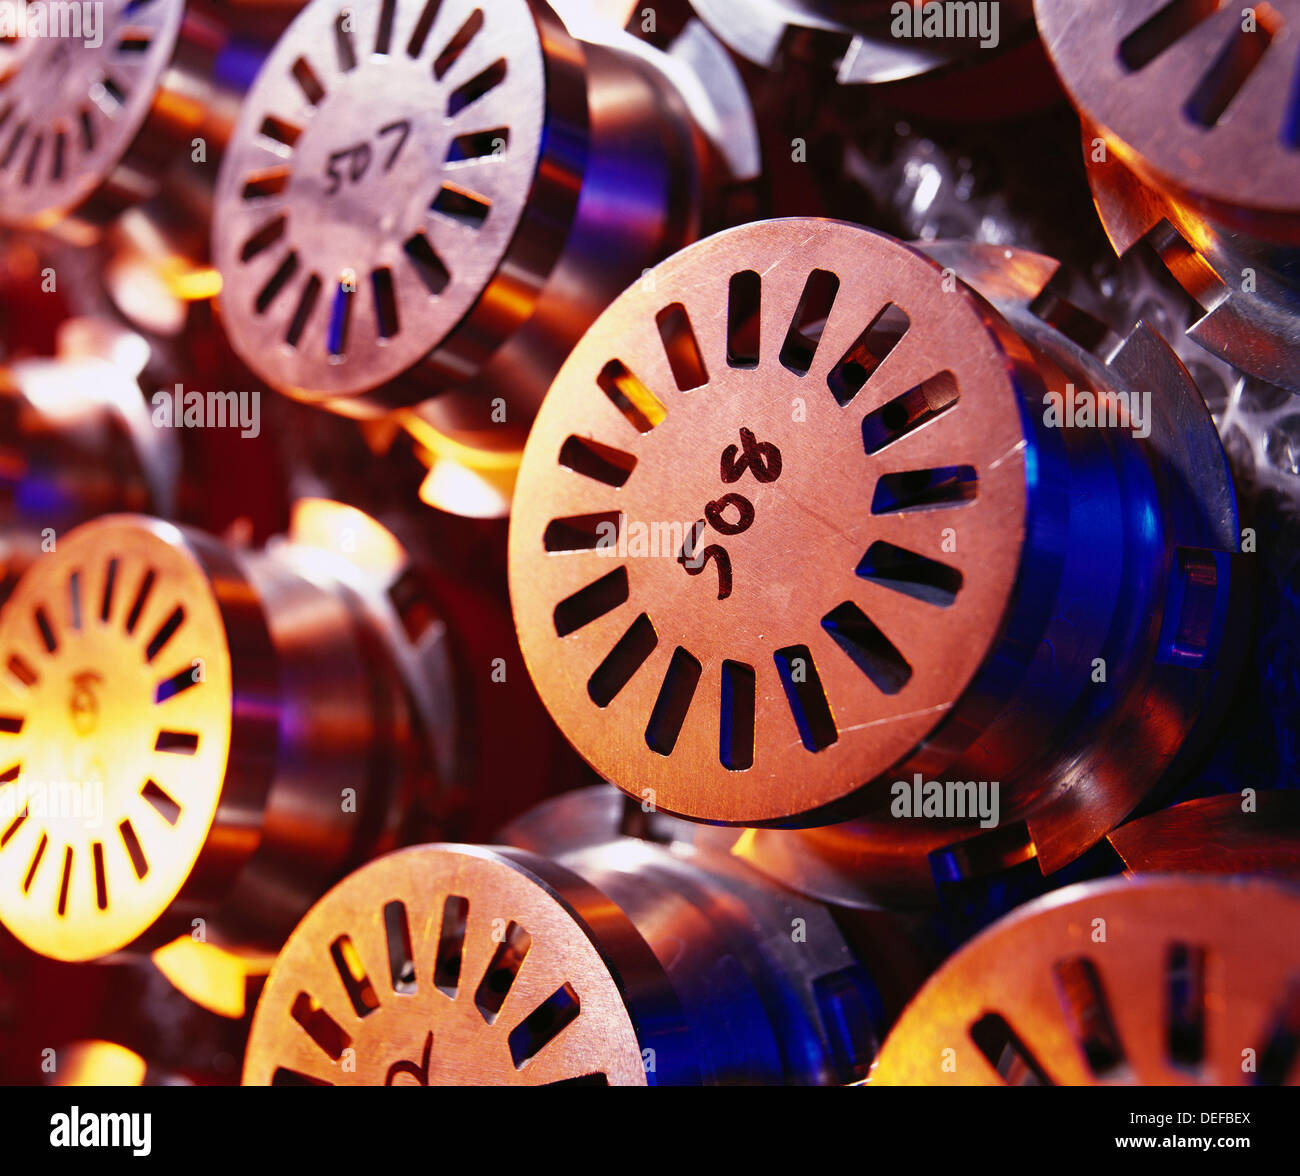 Gas turbine, power parts in warehouse, graphic shots of engine parts